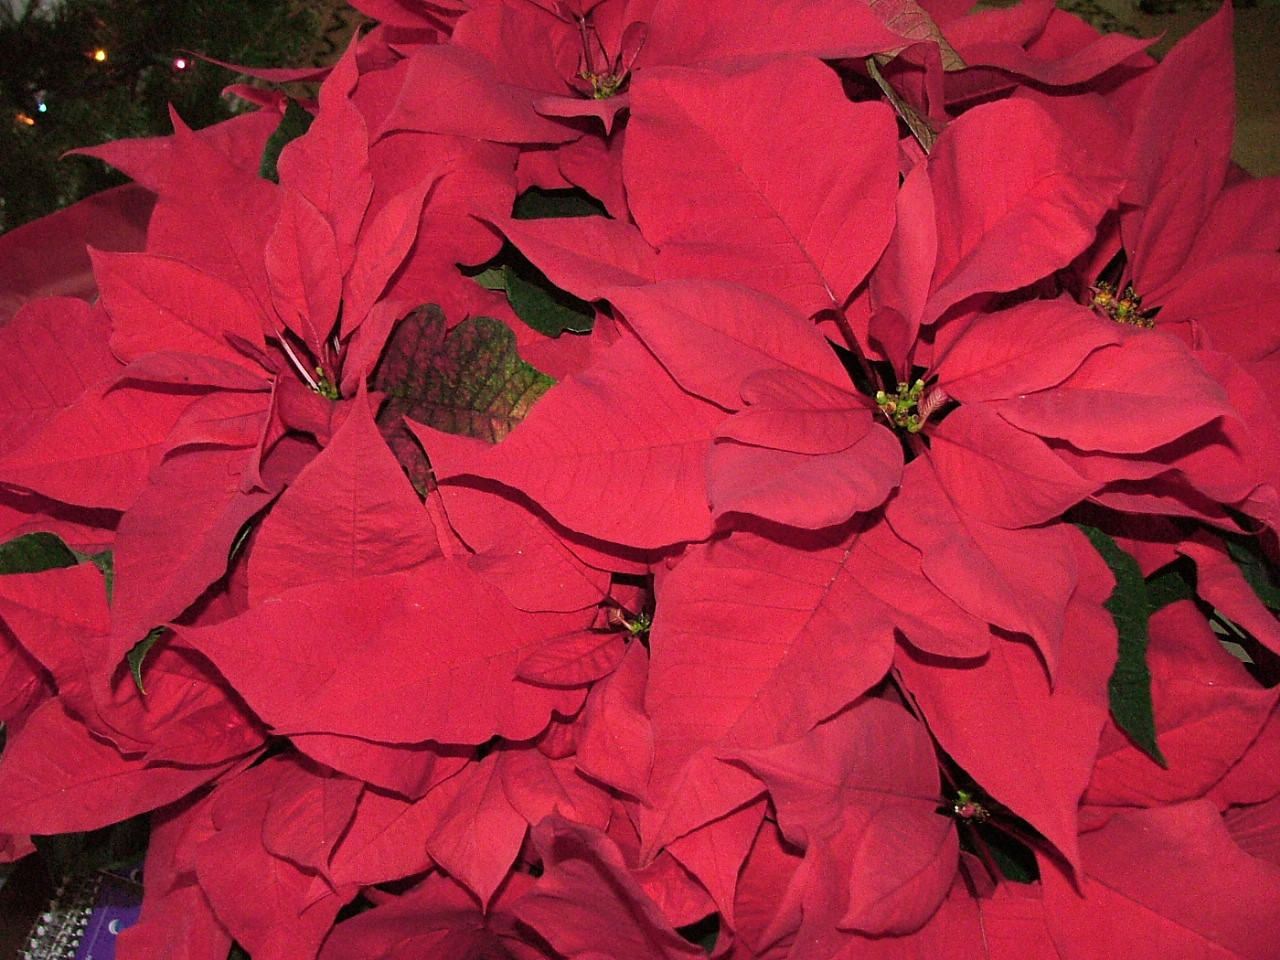 Someone from the ward dropped off this gorgeous poinsettia on Christmas.